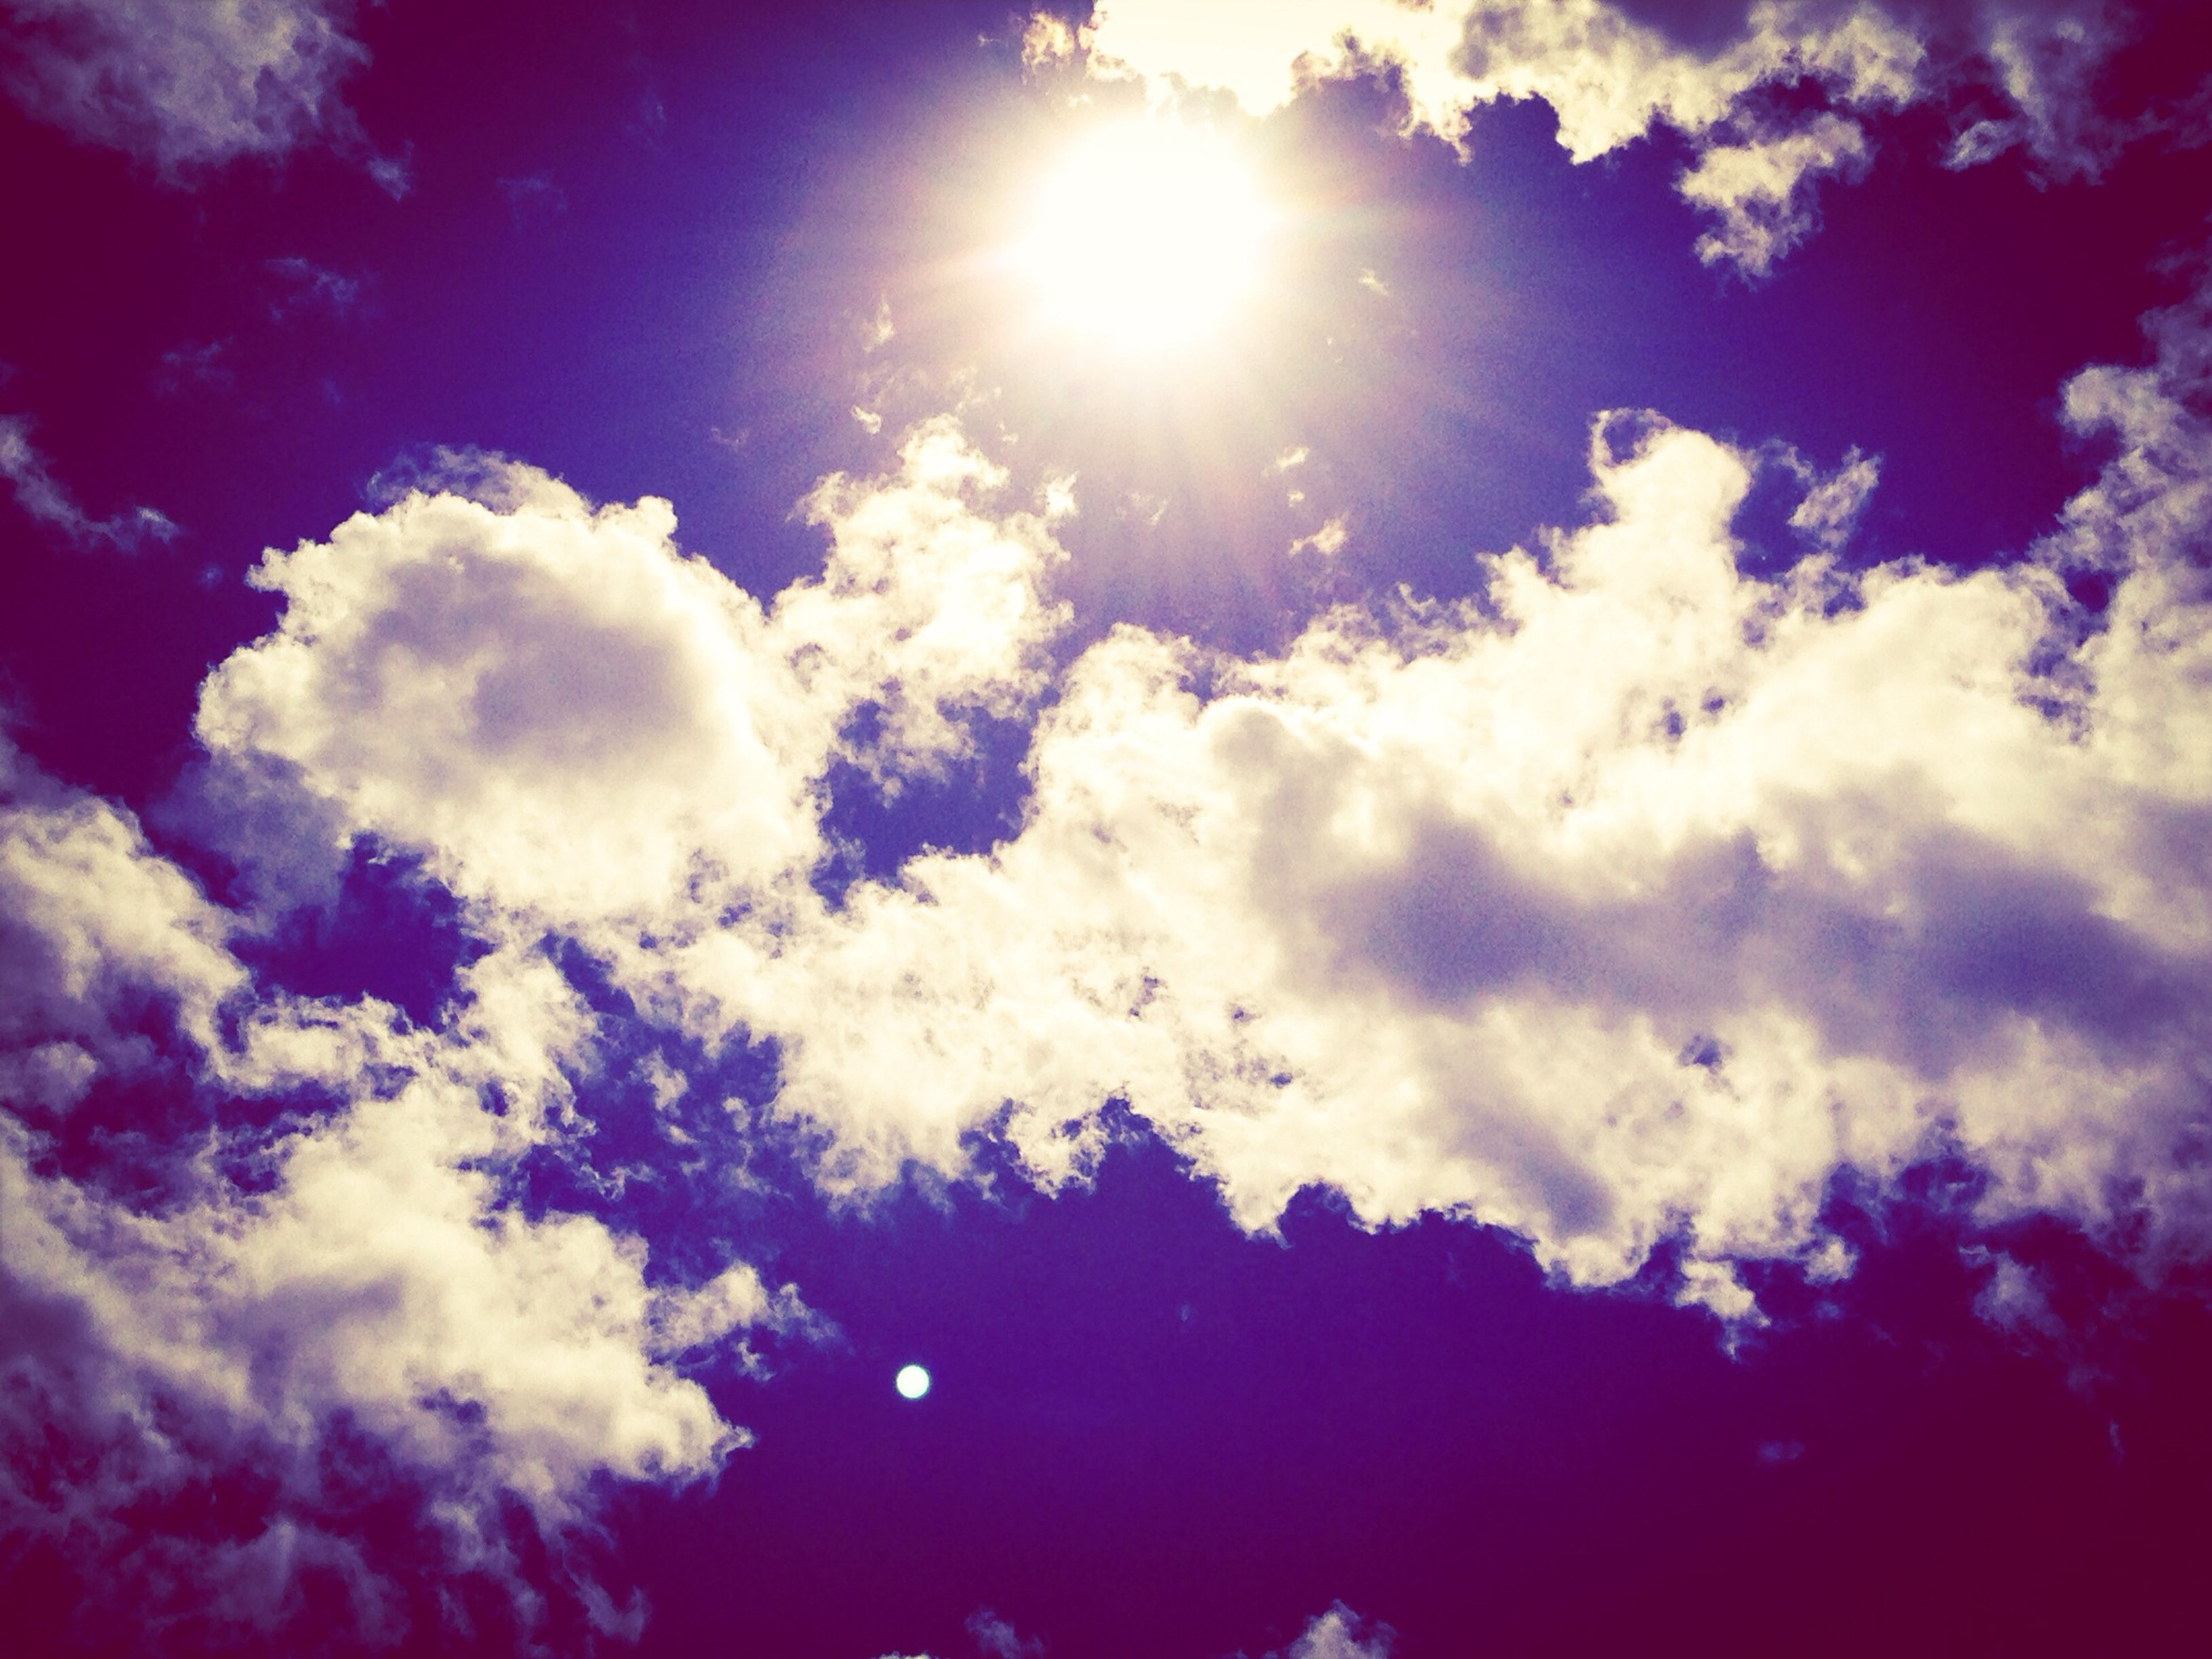 sun, sky, sunbeam, cloud - sky, low angle view, sunlight, beauty in nature, tranquility, nature, scenics, tranquil scene, lens flare, cloudy, cloud, bright, cloudscape, sky only, sunny, silhouette, weather